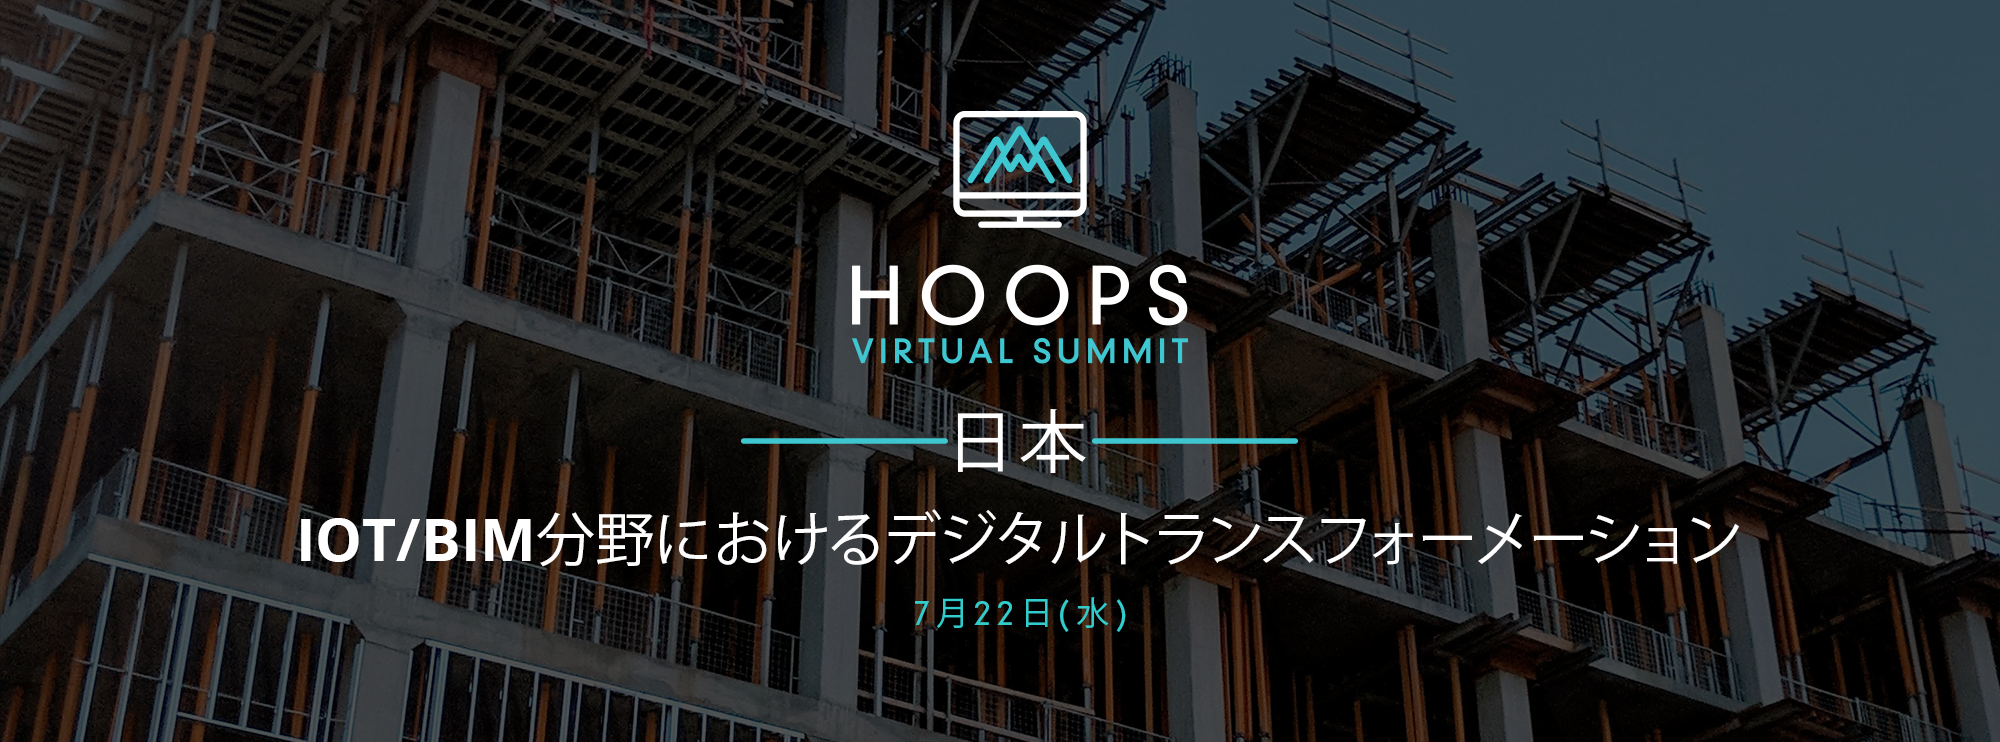 mailedit_HOOPS-Summit-Building_Japan-v3